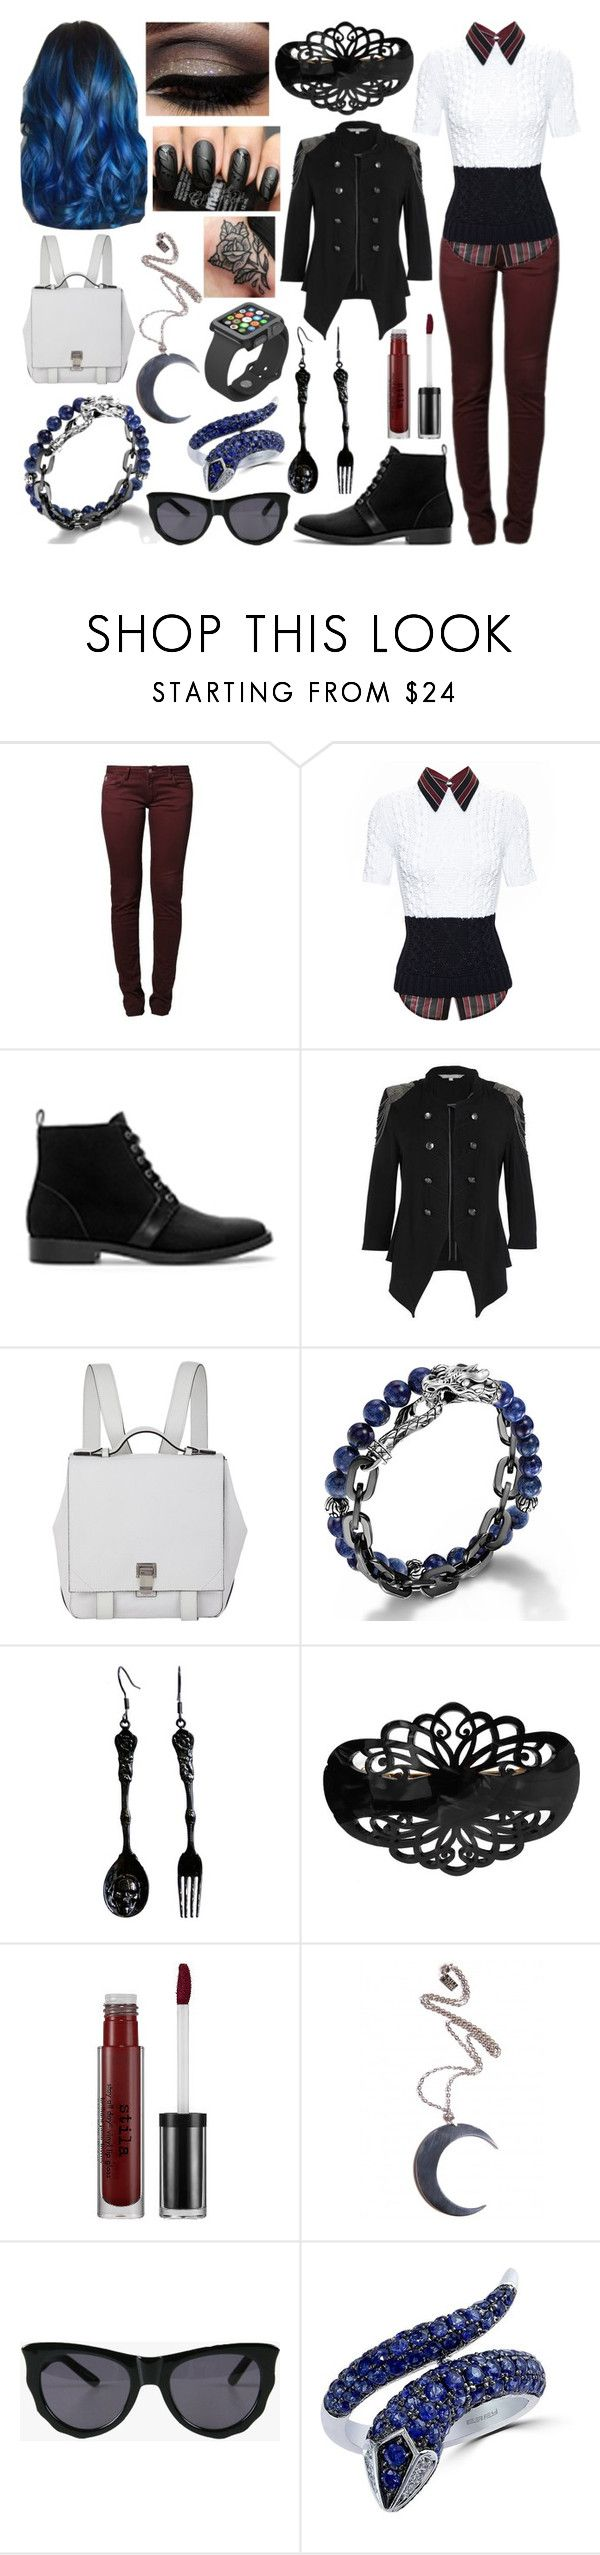 """Azalea Bradford"" by ashlynknight ❤ liked on Polyvore featuring Le Temps Des Cerises, N°21, Zara, Red Herring, Proenza Schouler, John Hardy, Alexander McQueen, France Luxe, Stila and Disturbia"